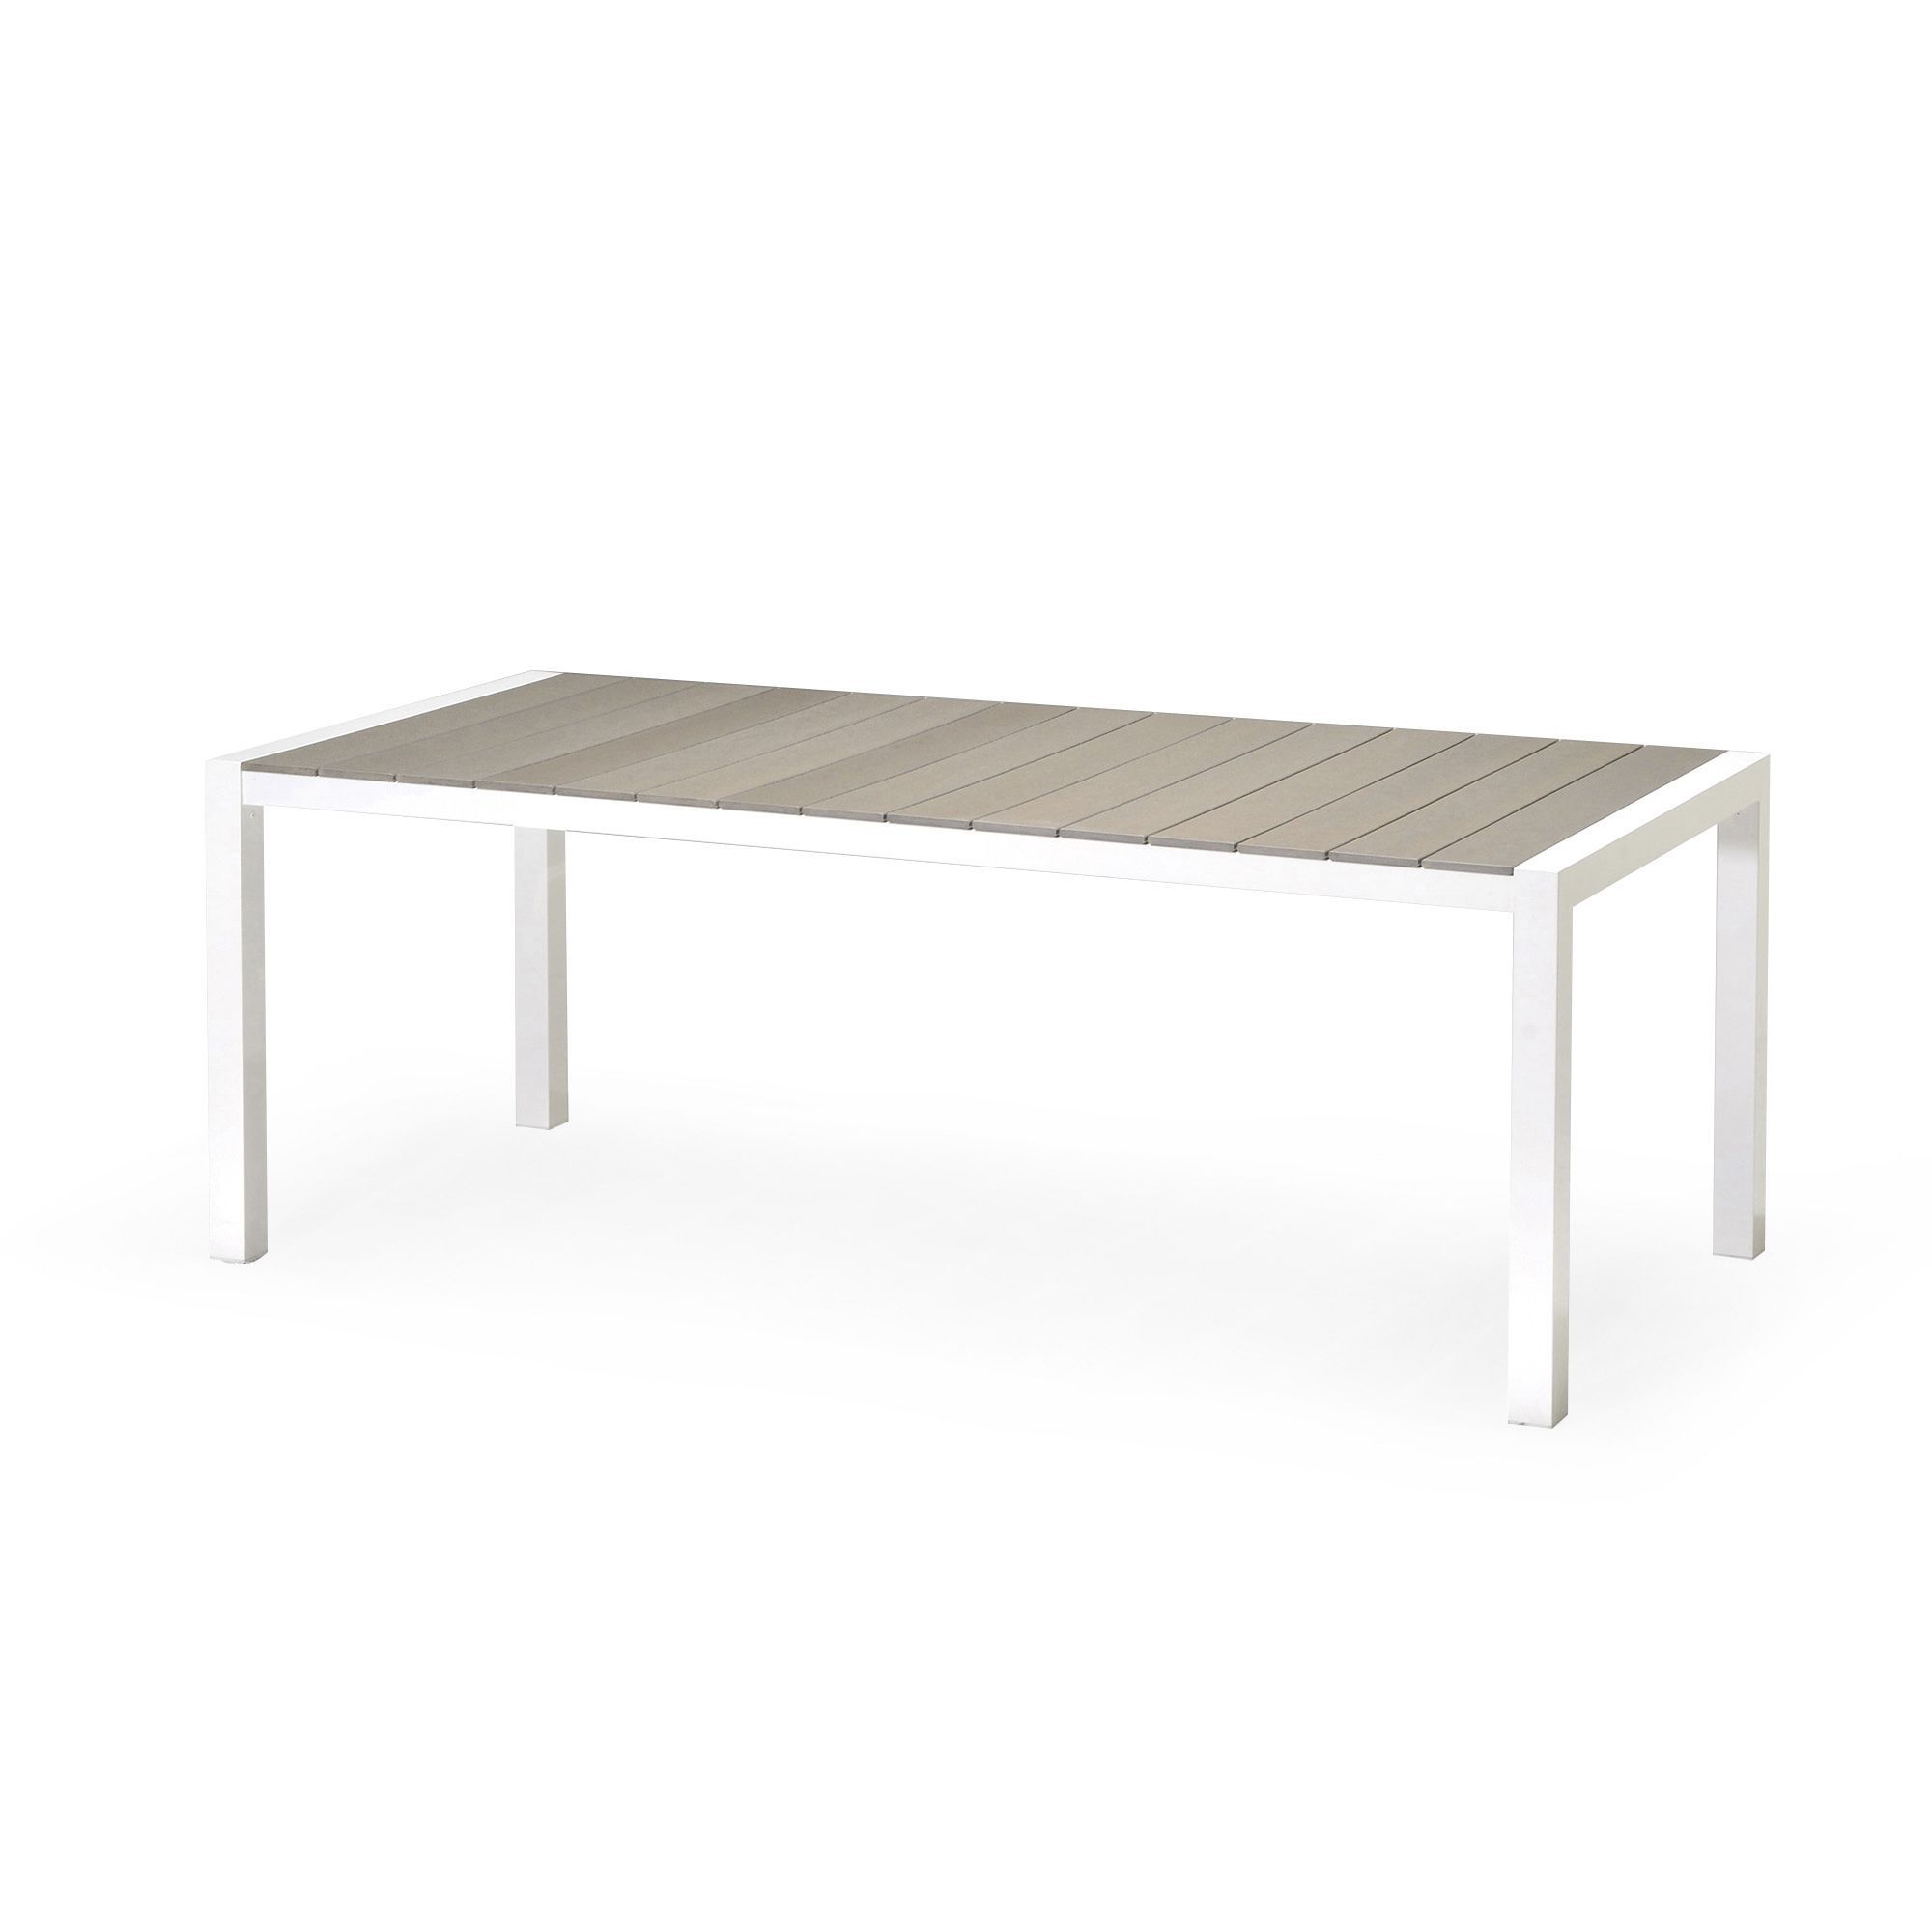 Table de jardin rectangulaire en Durawood® Blanc sable ...